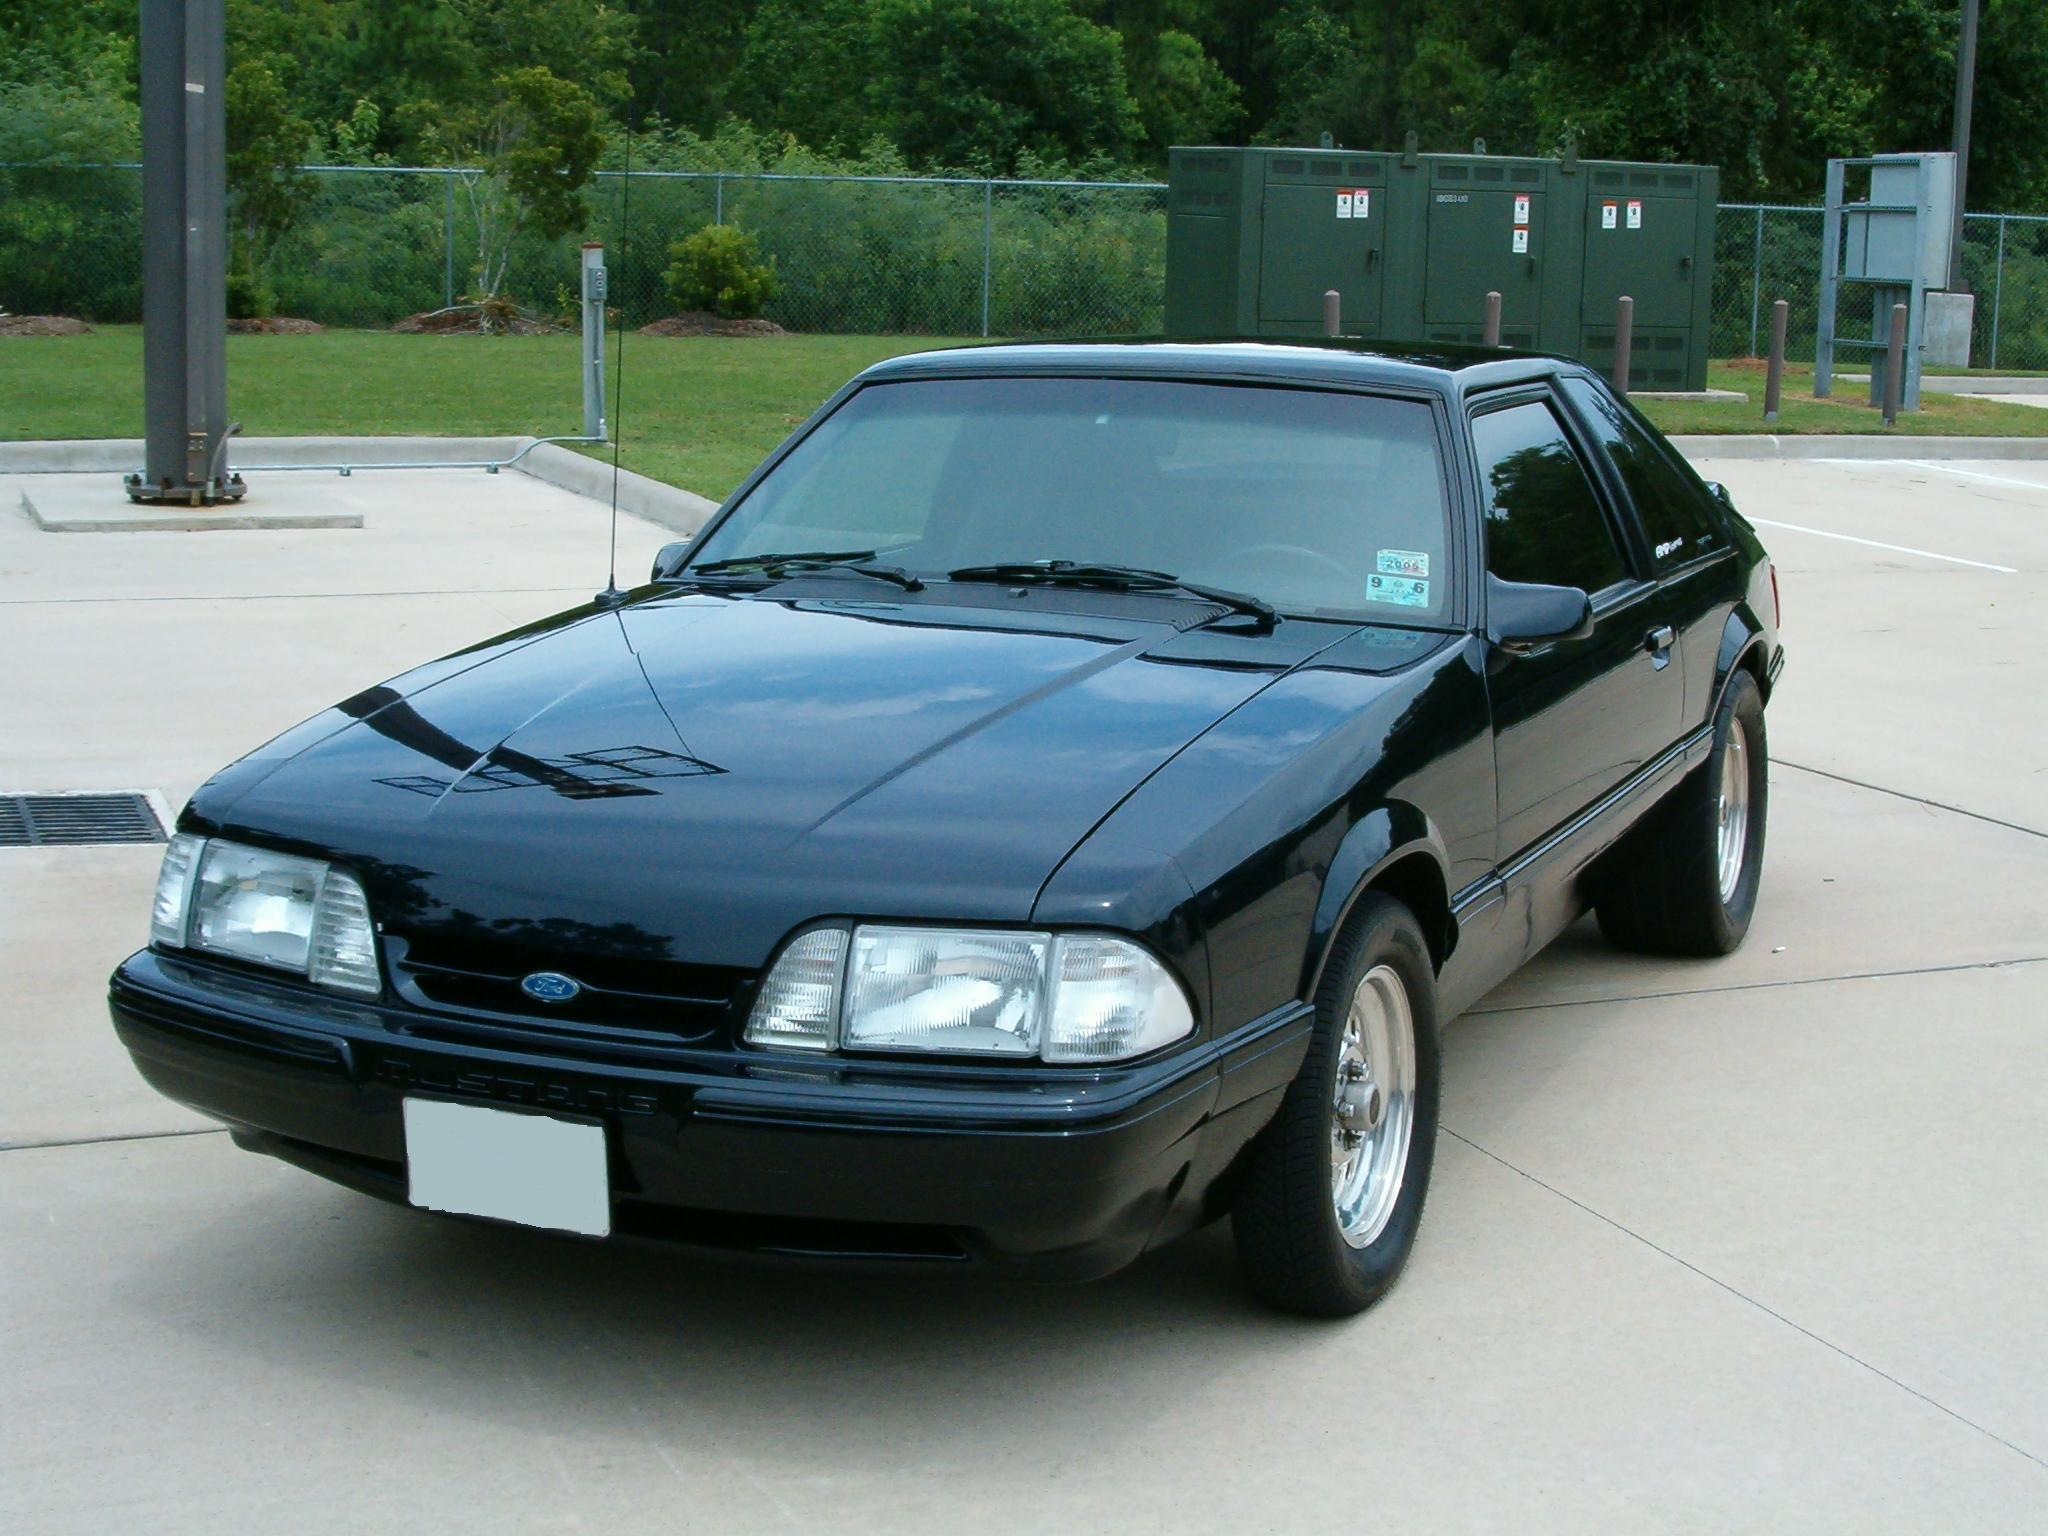 1989 ford mustang lx hatchback nitrous picture mods upgrades